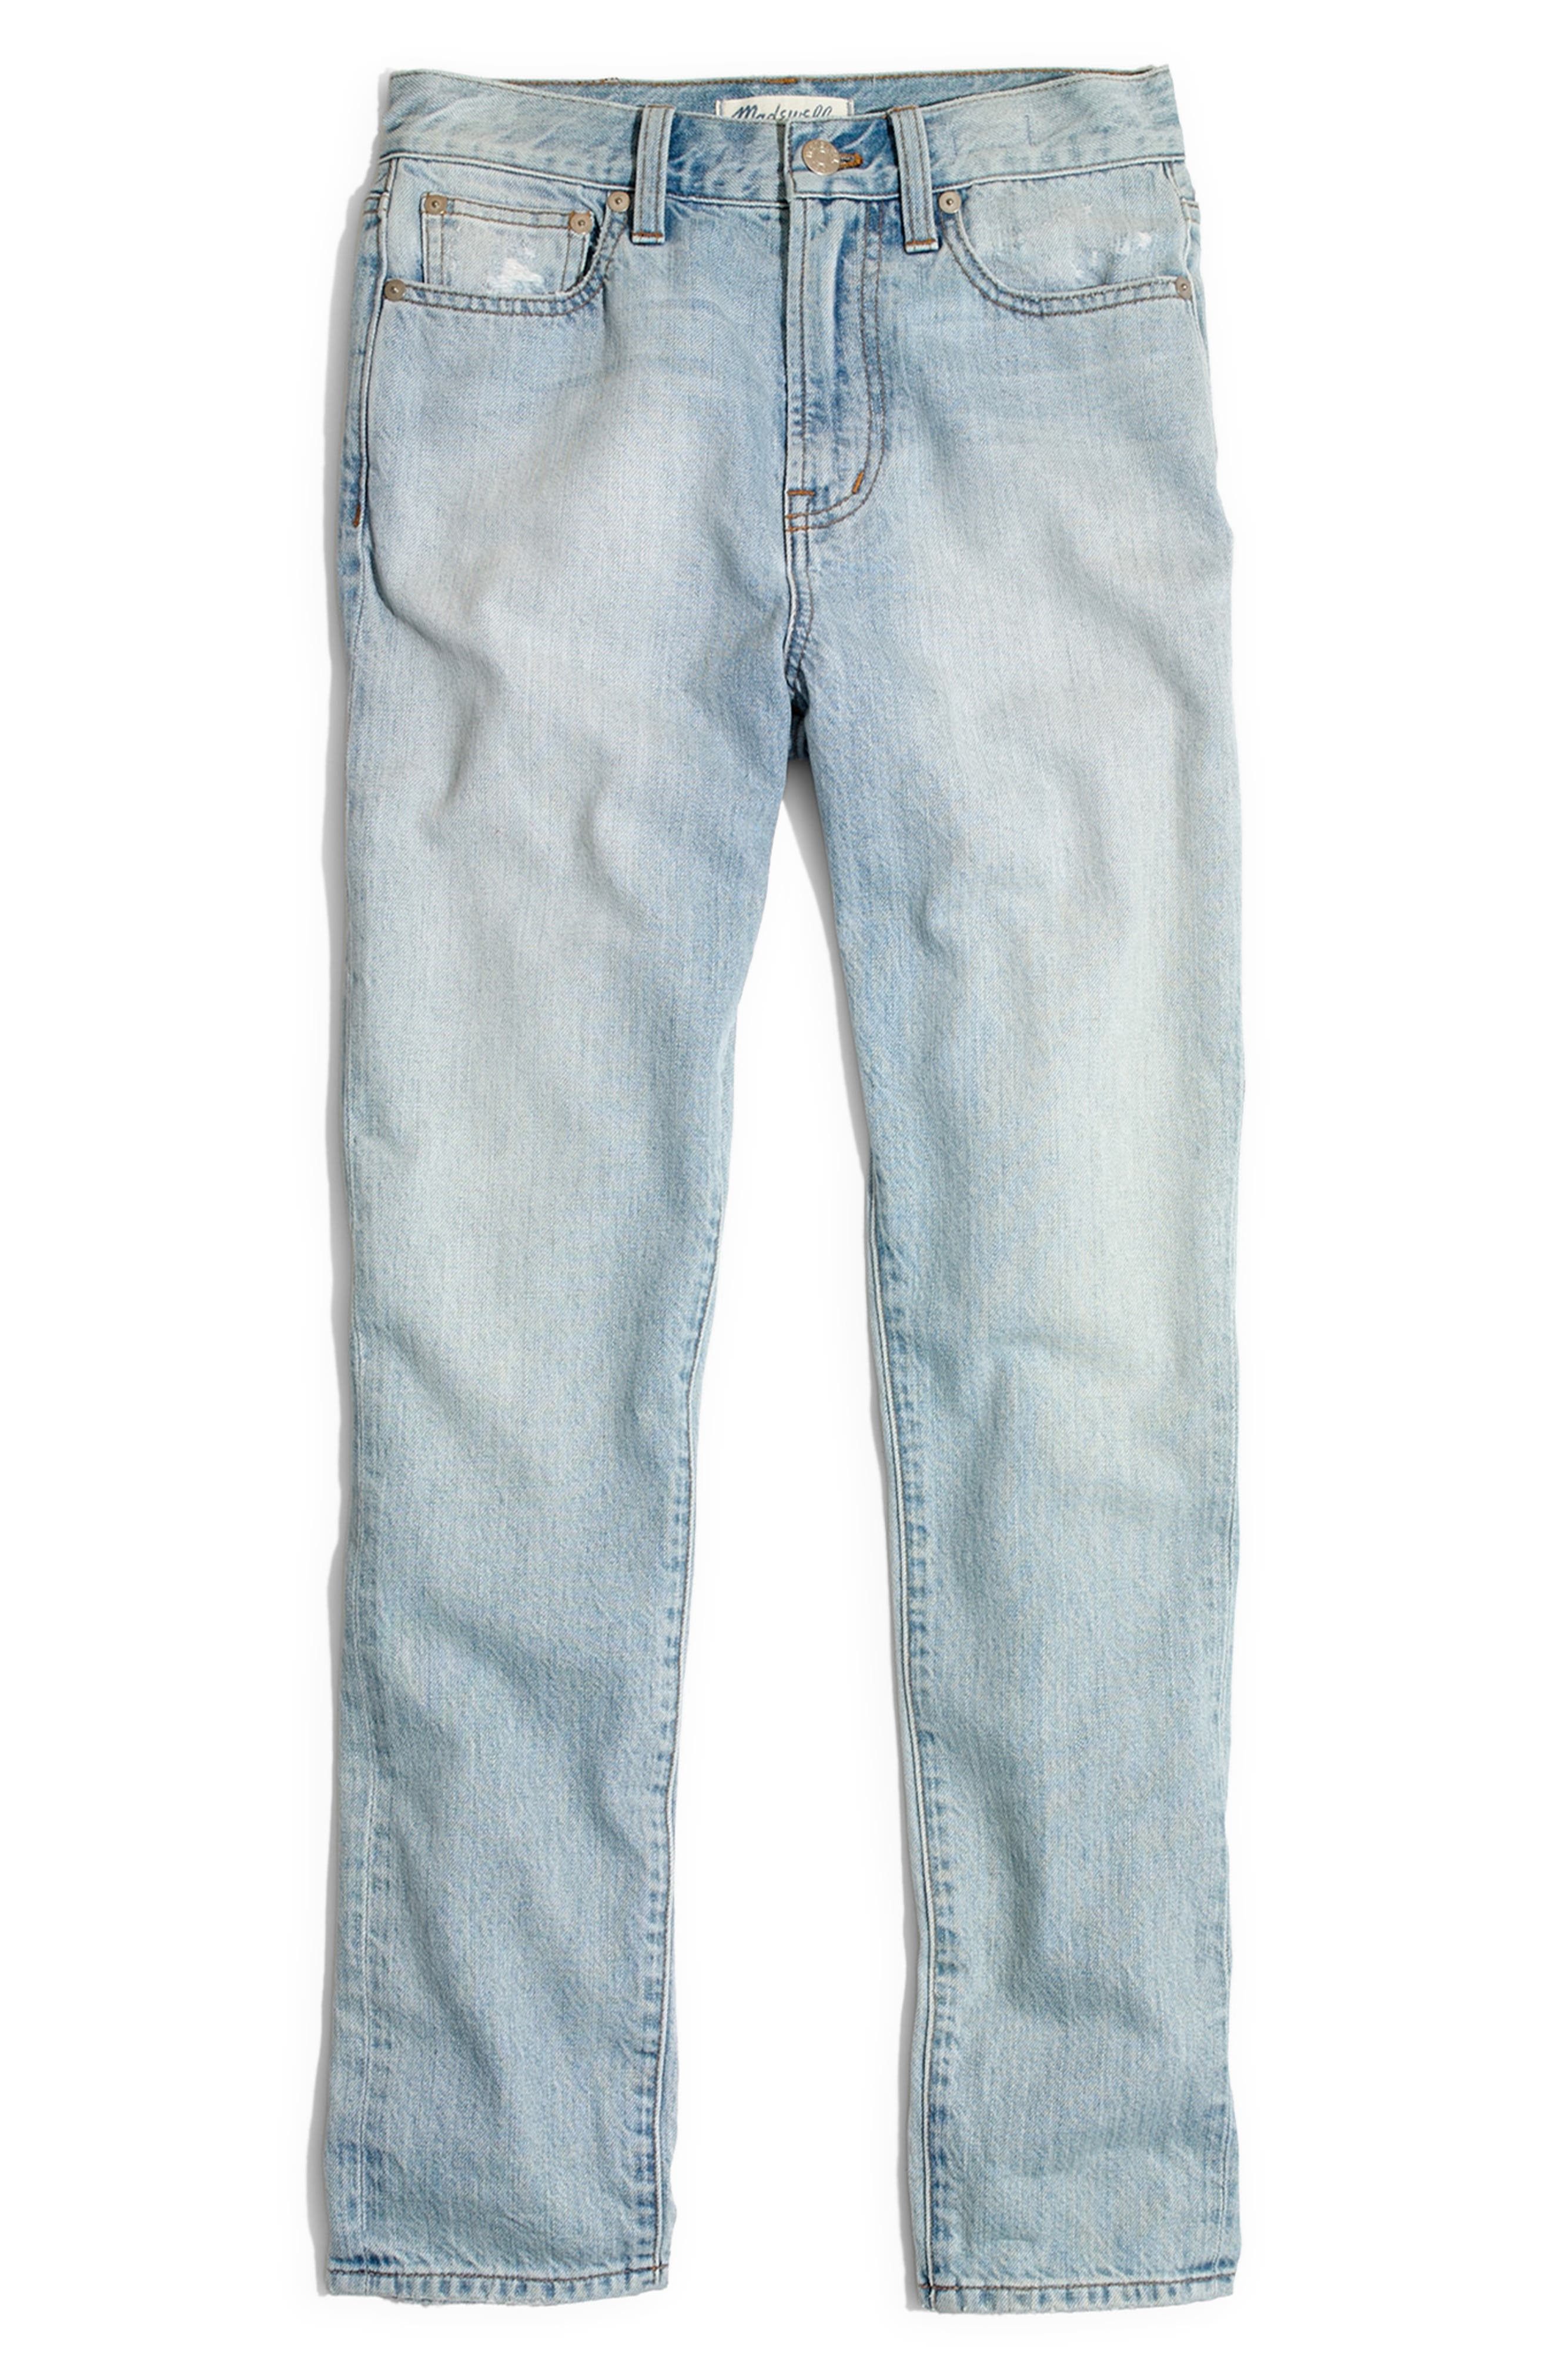 MADEWELL, 'Perfect Summer' High Rise Ankle Jeans, Alternate thumbnail 5, color, FITZGERALD WASH